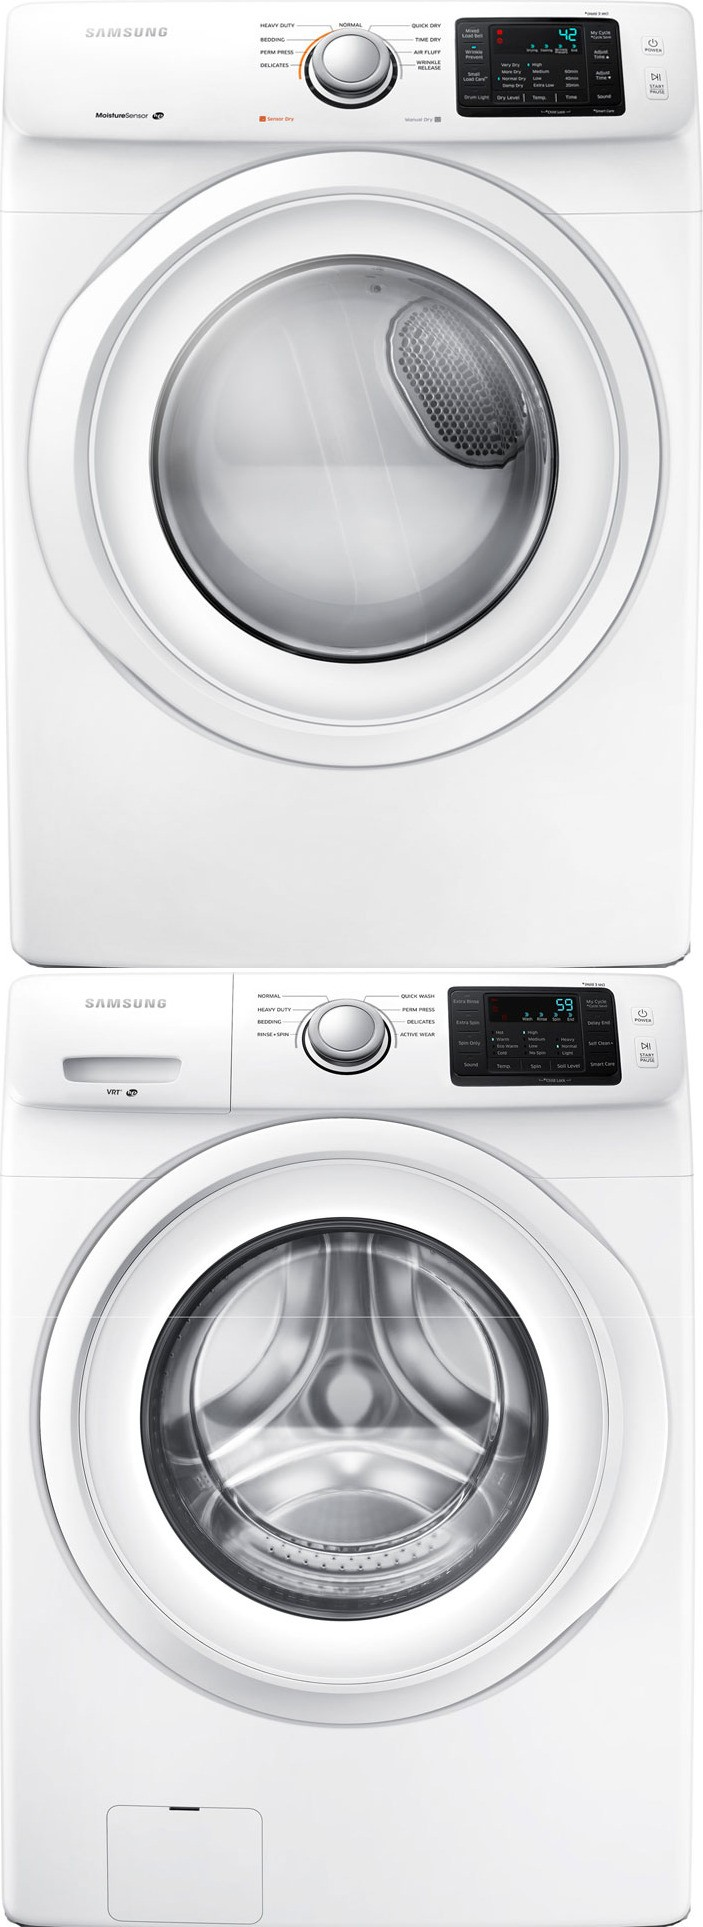 Samsung Wf42h5000aw Front Load Washer Amp Dv42h5000gw Gas